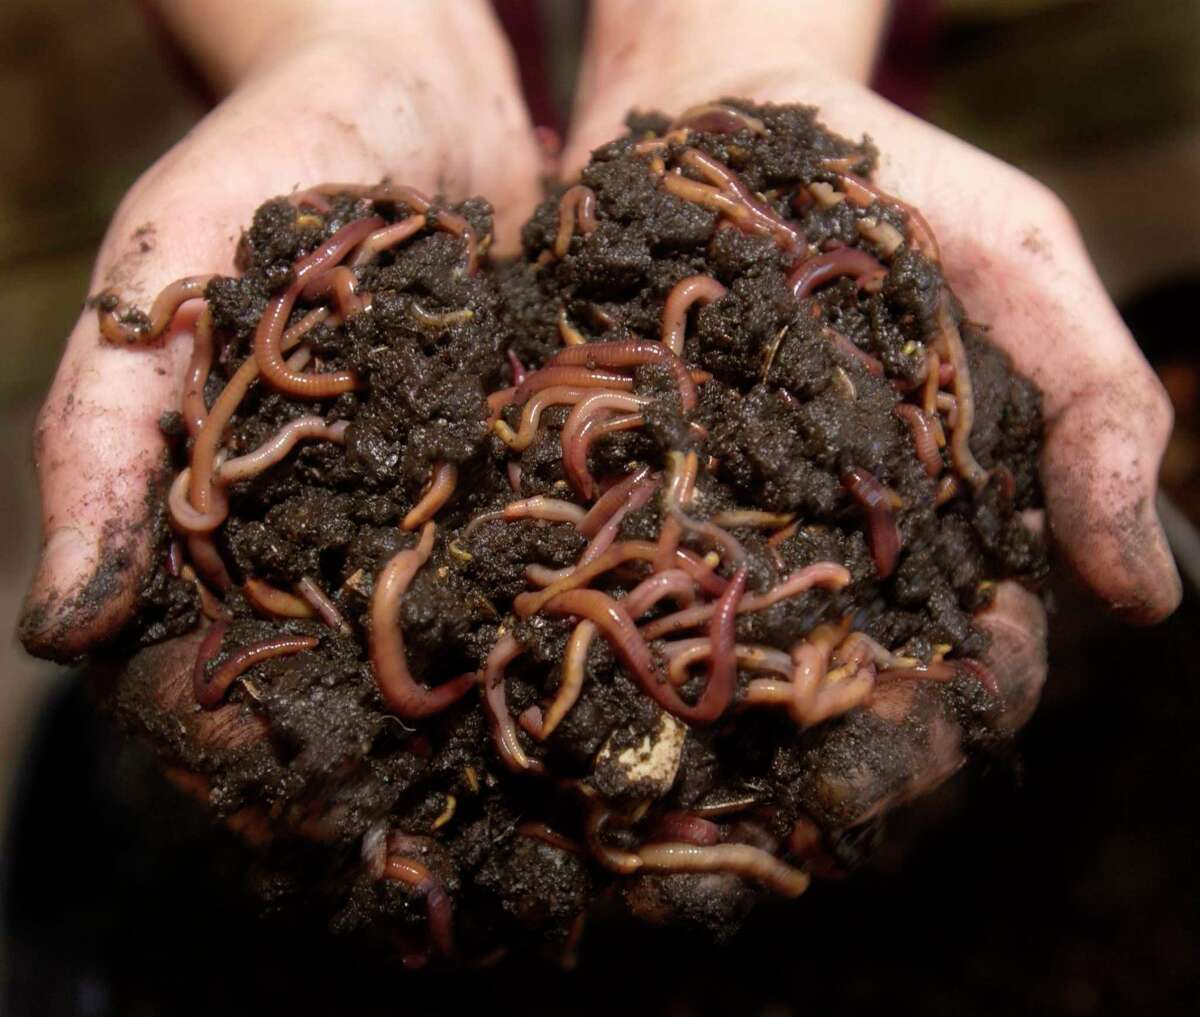 Worms require moist soil to survive.